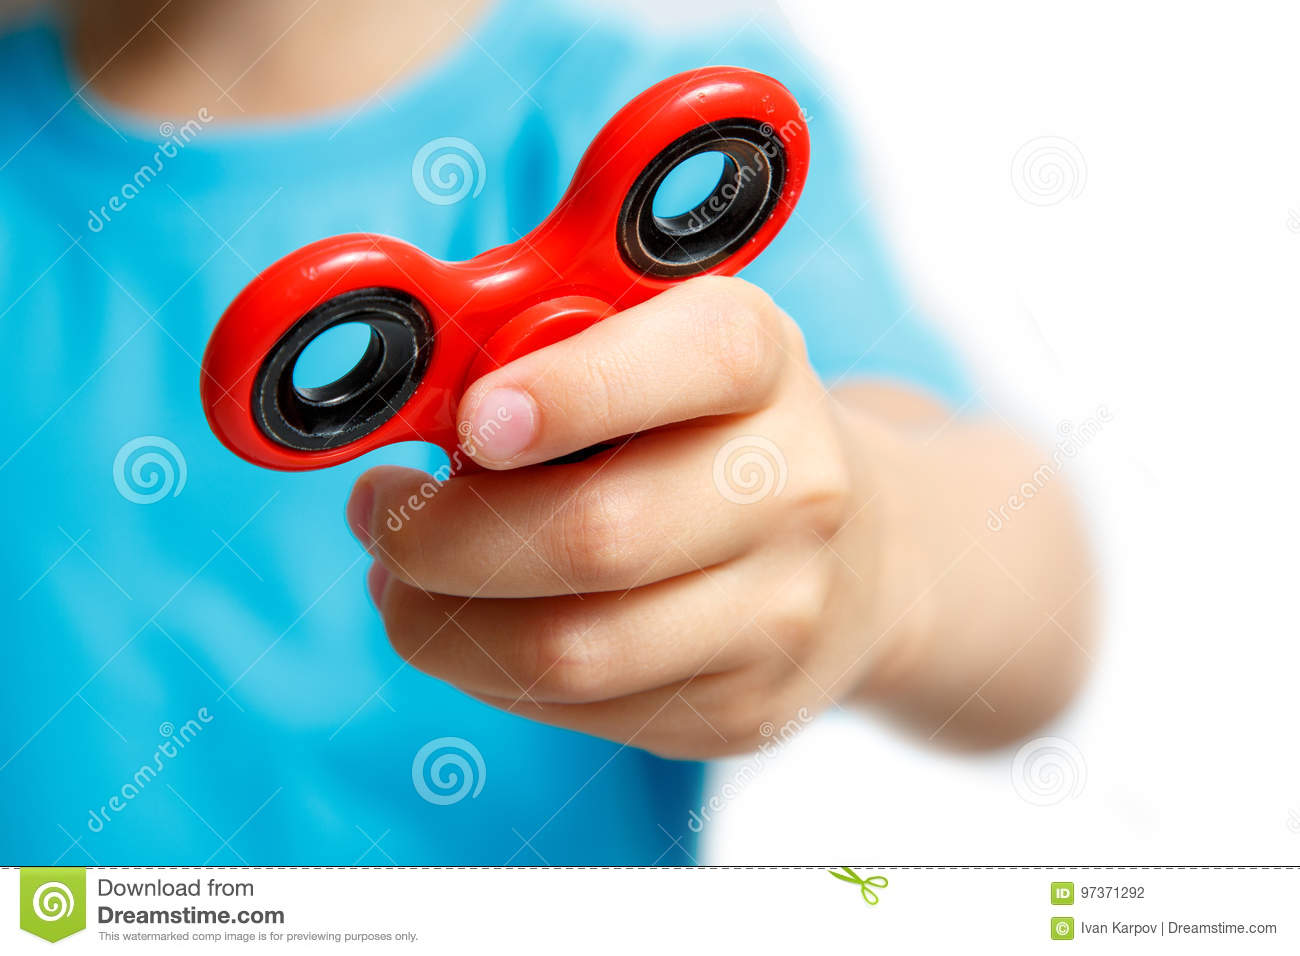 New Spin Toys : Kid hand holding popular fidget spinner toy stock photo